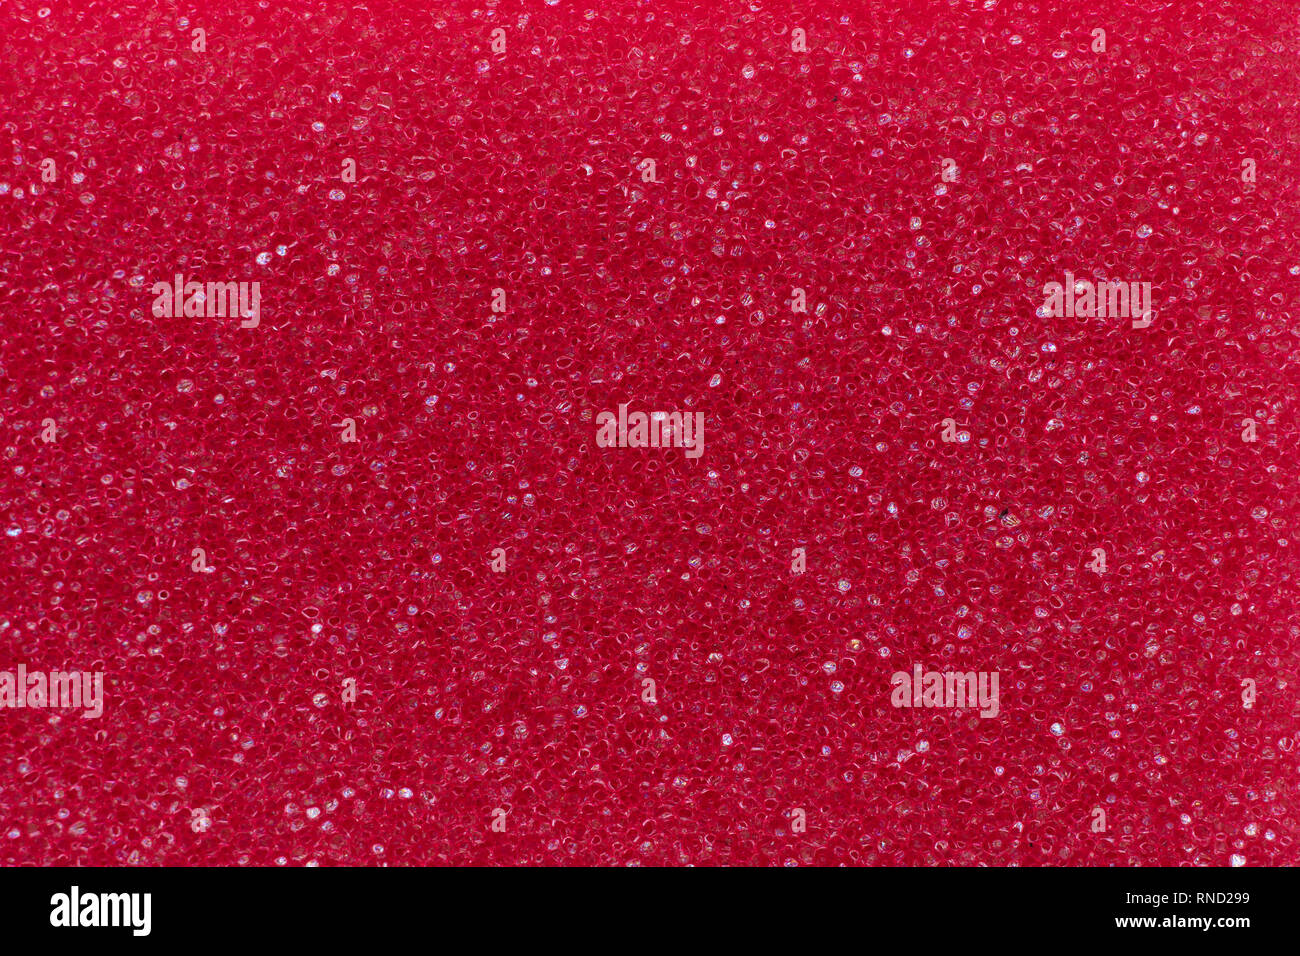 Macro photo of red porous material for background. Stock Photo